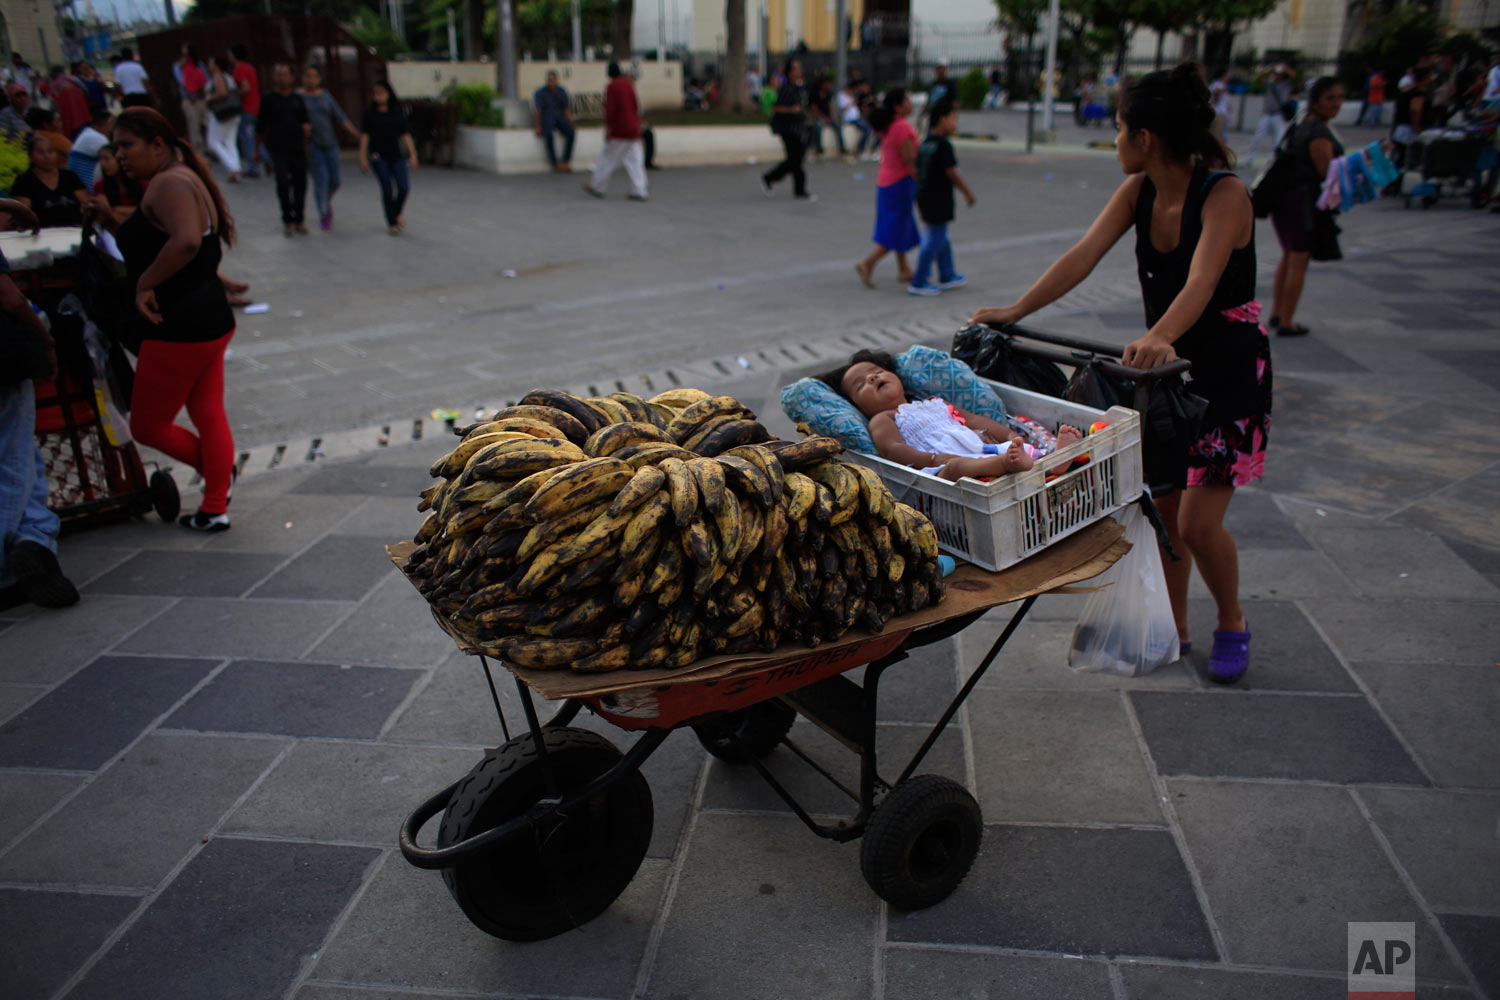 A street vendor pushes a wheelbarrow on which her baby daughter sleeps next to plantains for sale, at a central plaza in San Salvador, El Salvador, Aug. 19, 2018. Earlier this year, the capital opened its newly-renovated downtown heart, with a pedestrian zone linking several updated squares in the capital's historic center. Where public transit buses and market stalls once clogged the streets, local residents enticed by both new amenities and greater security now stroll, watch street concerts, or play in the illuminated water fountain. No longer authorized to have fixed stands, vendors can operate as long as they keep moving. (AP Photo/Rebecca Blackwell)